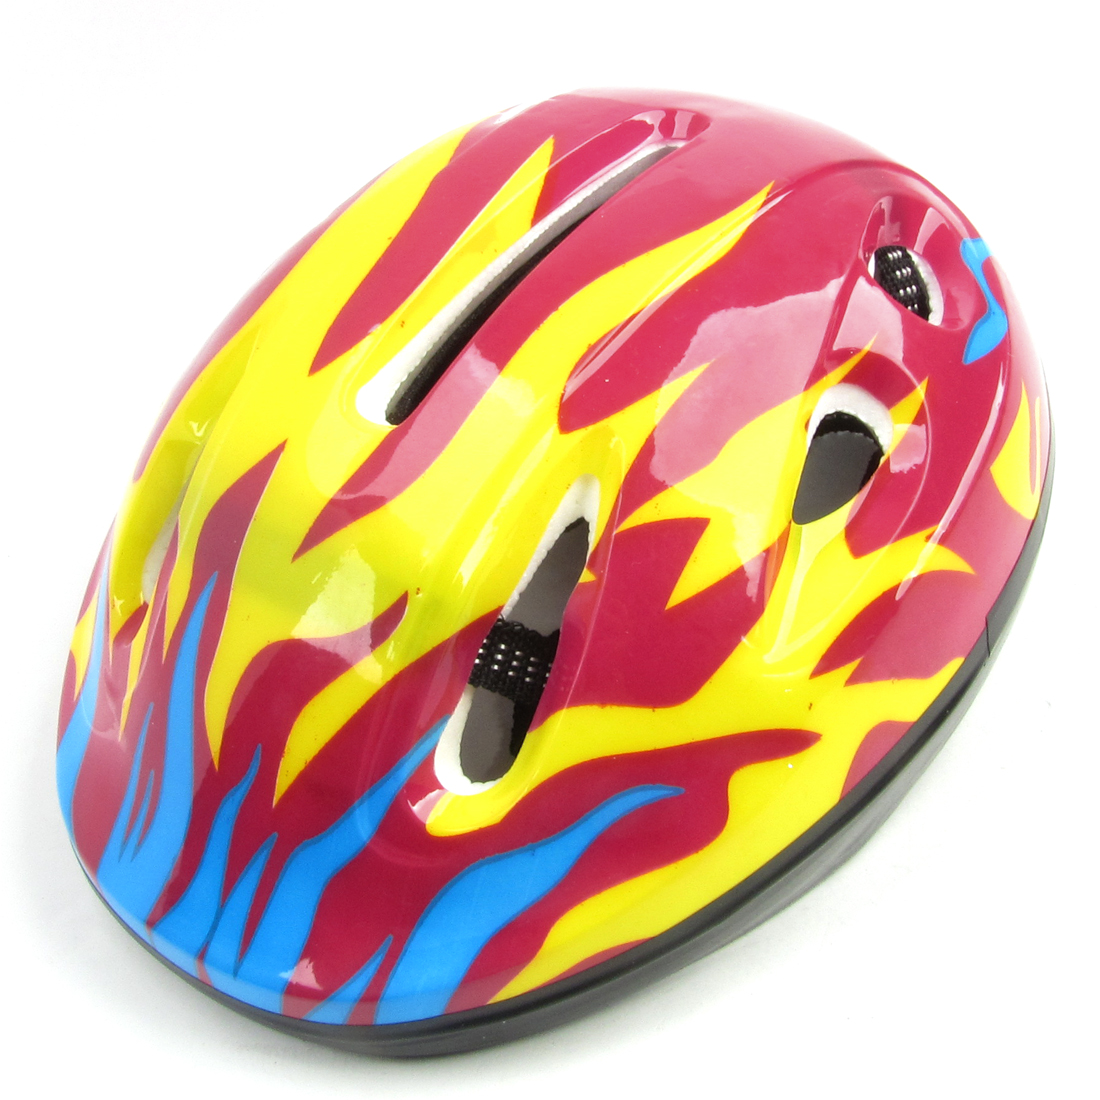 Flame Pattern Roller Skating Racing Sports Protective Bike Helmet Yellow Blue